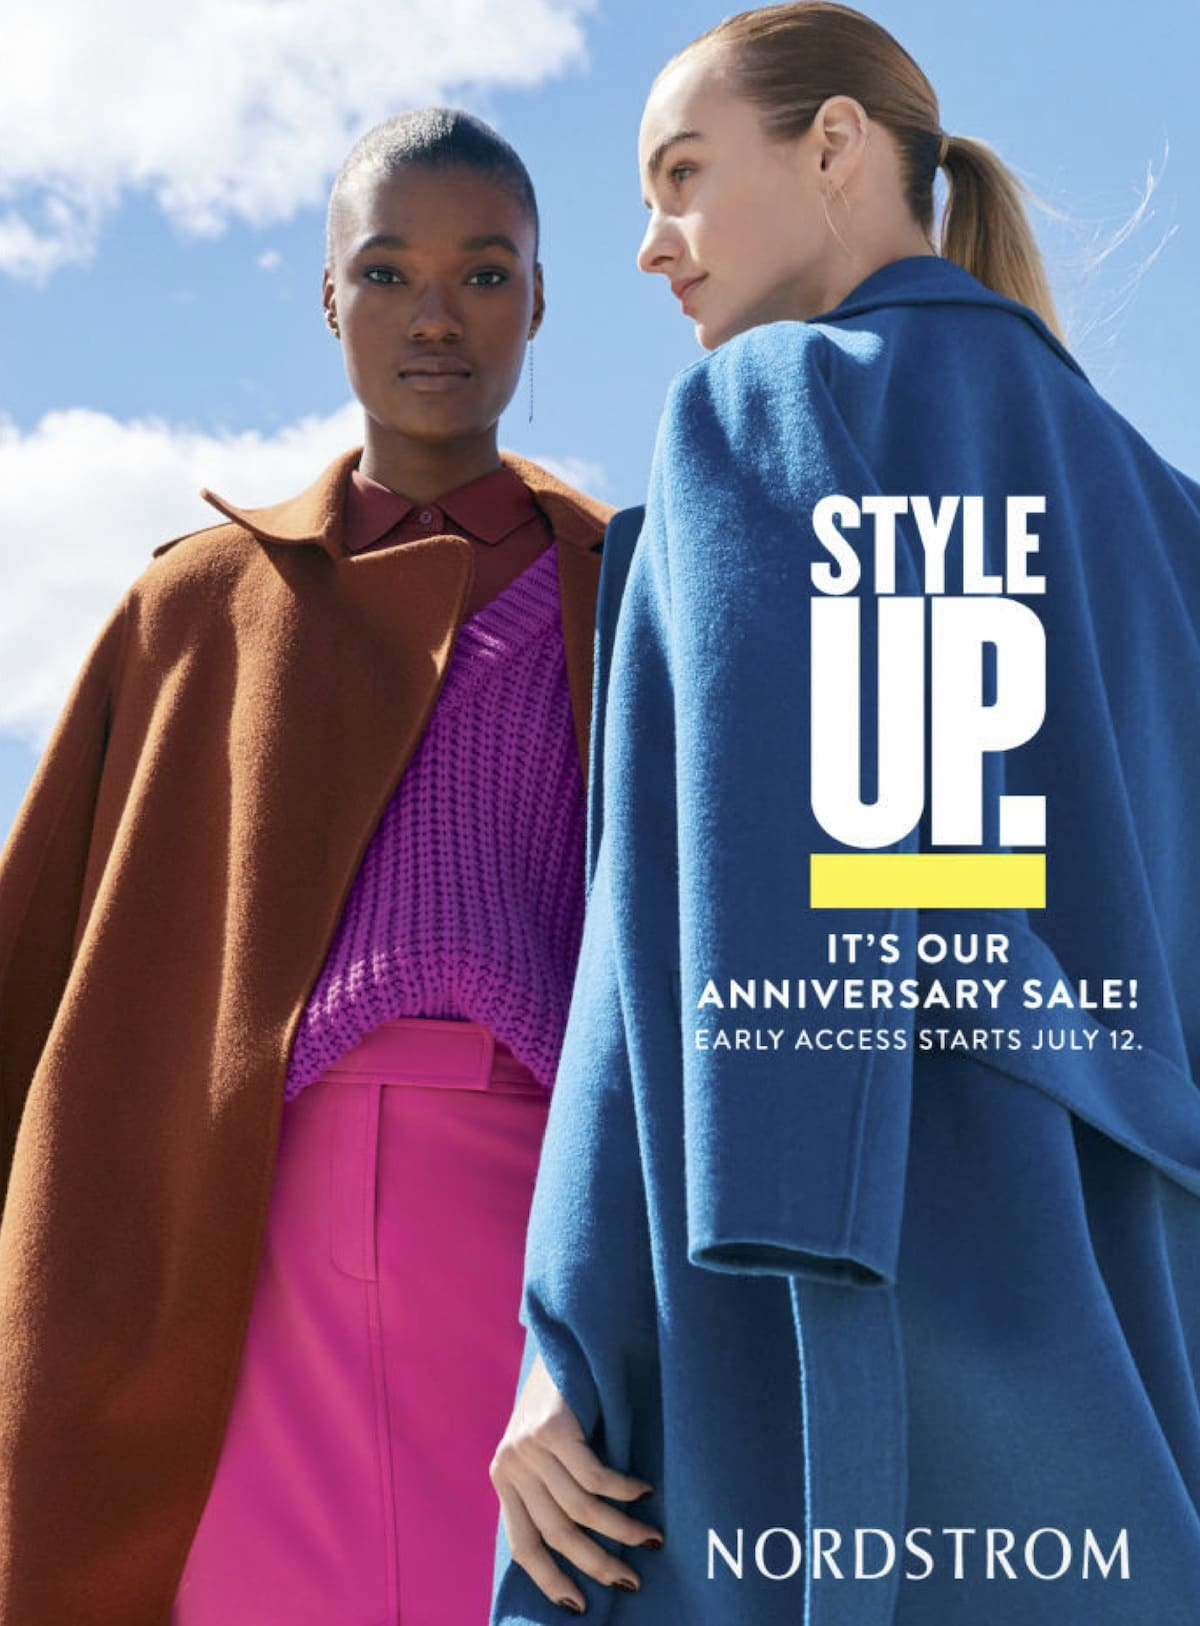 A detailed review of the Nordstrom Anniversary Sale 2019 catalog. Read this post FIRST to discover the top 10 hottest pieces likely to sell out first.